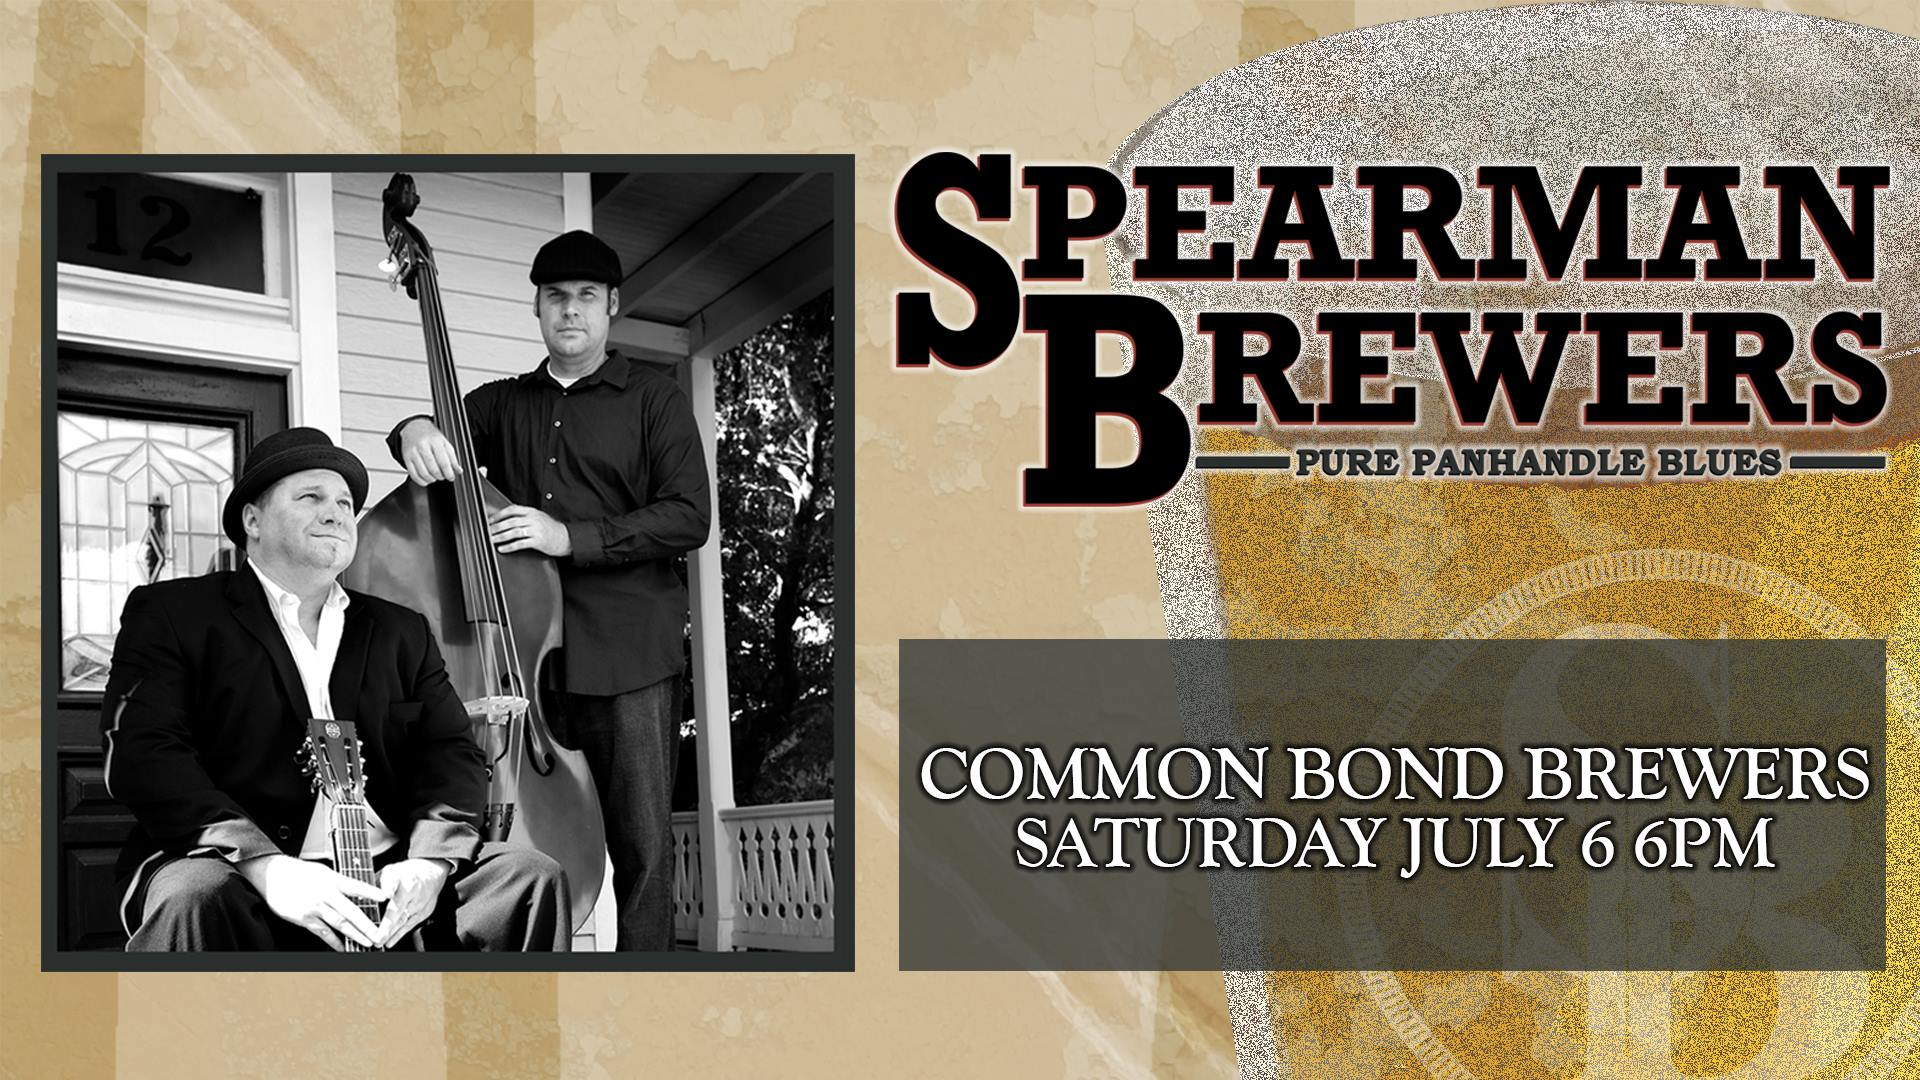 Spearman-Brewers-at-Common-Bond